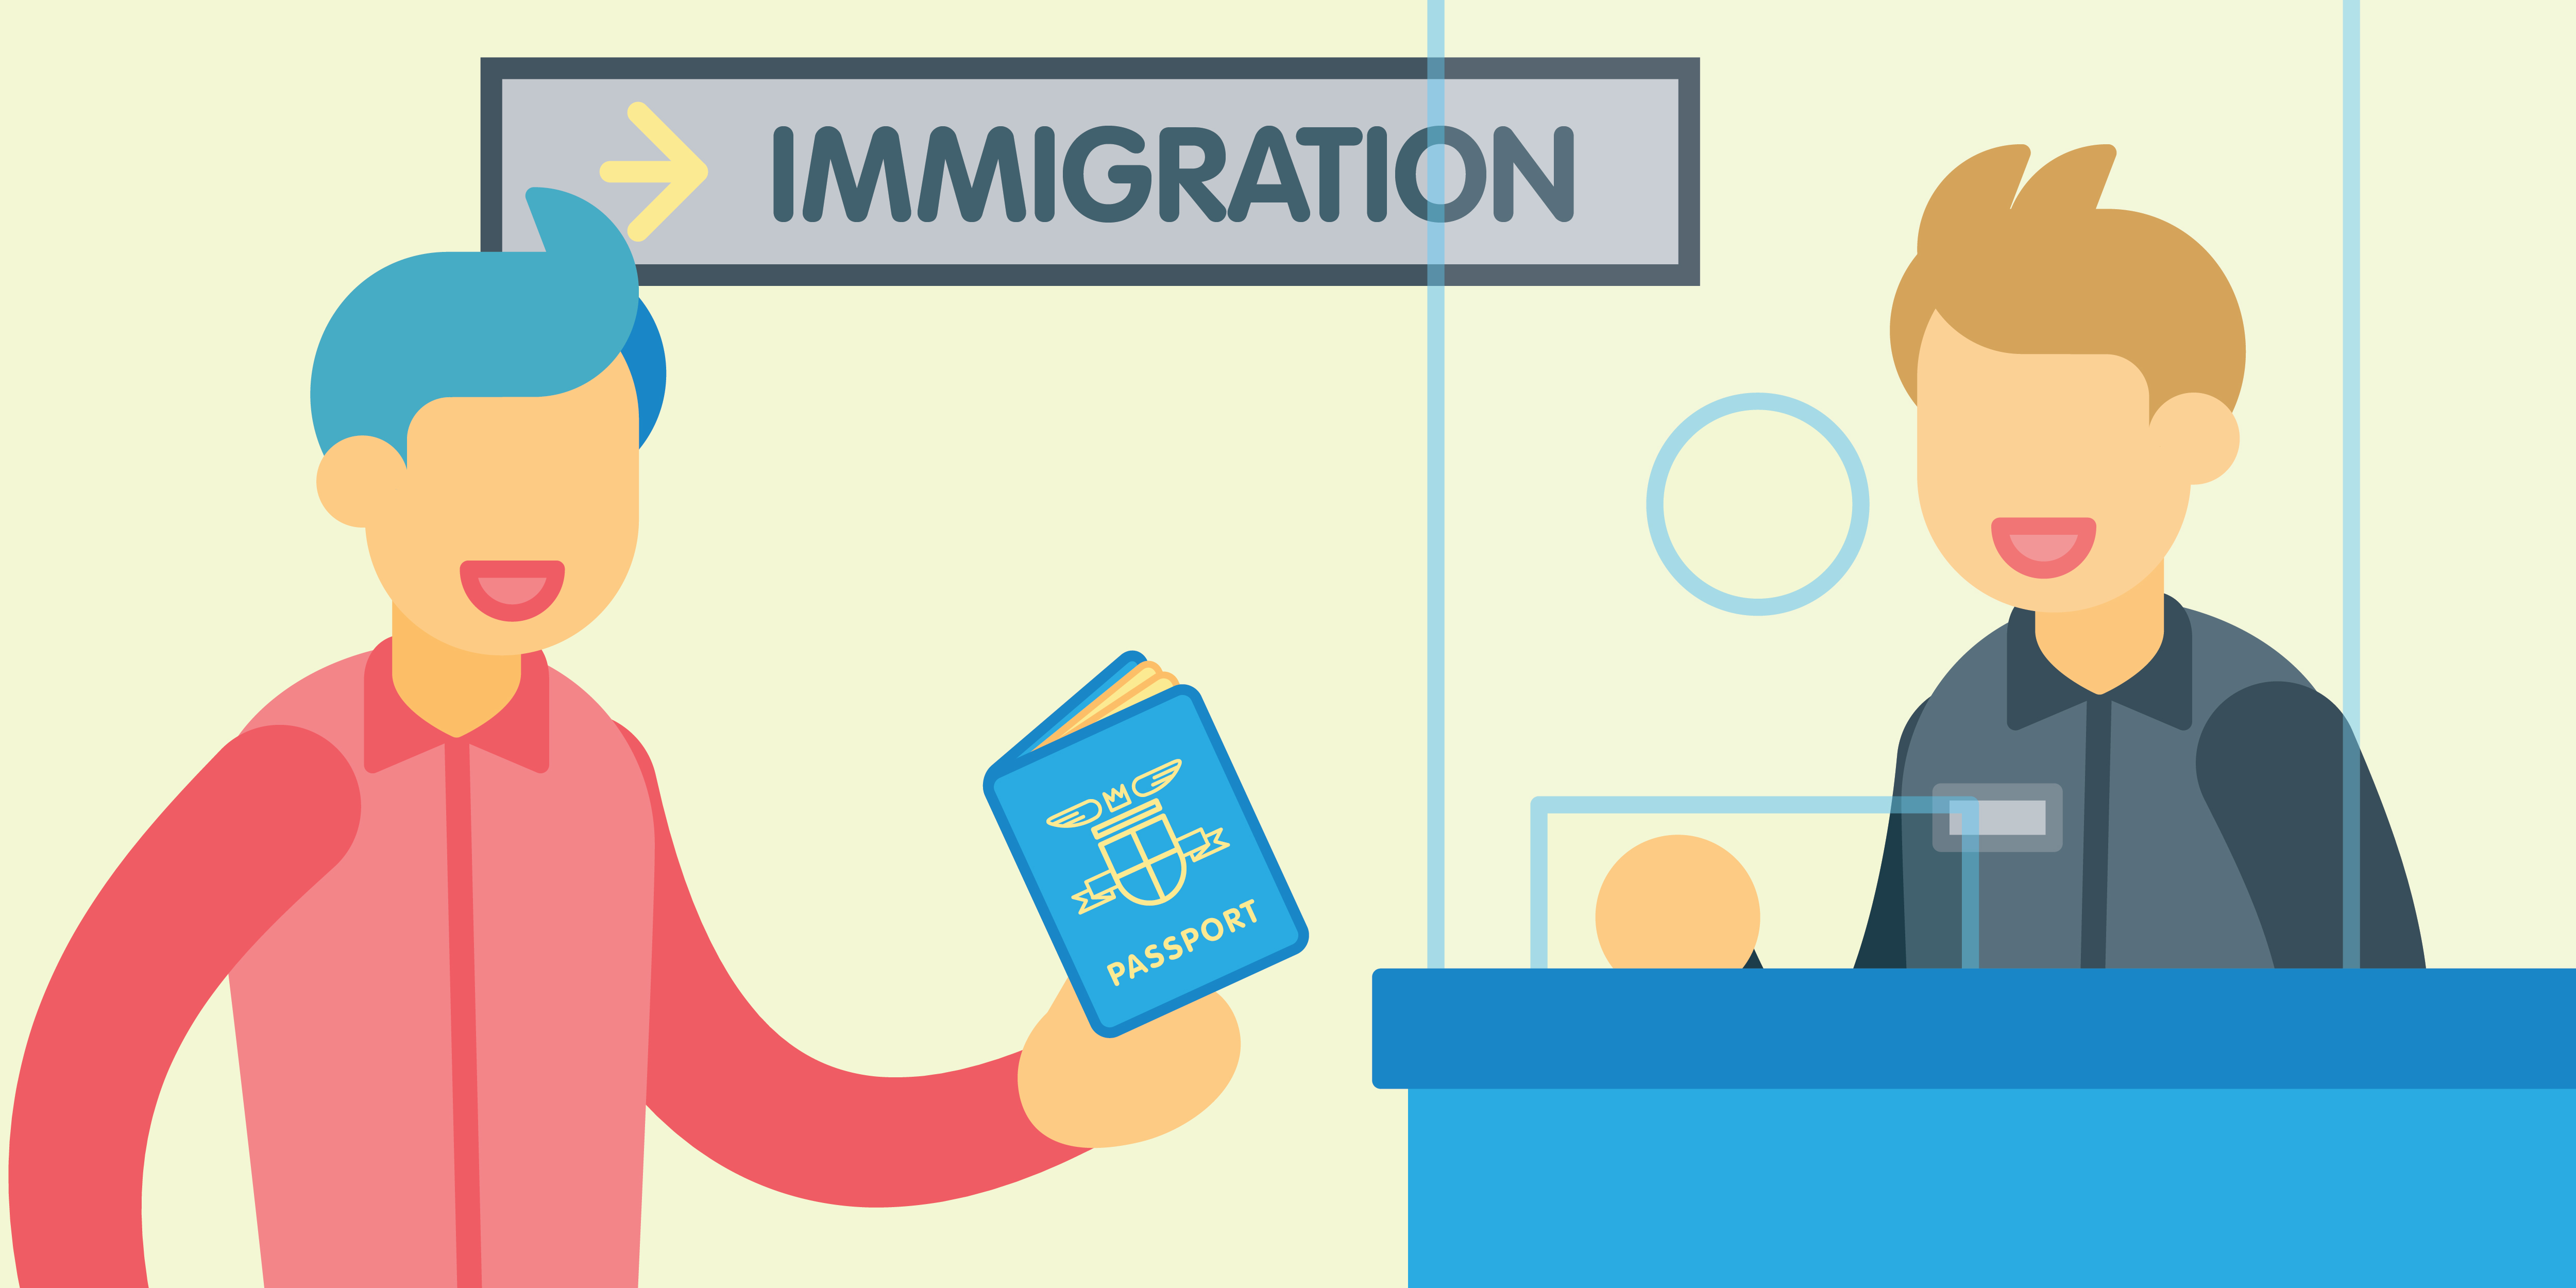 Learntalk blogposts 12 04 2017 immigration